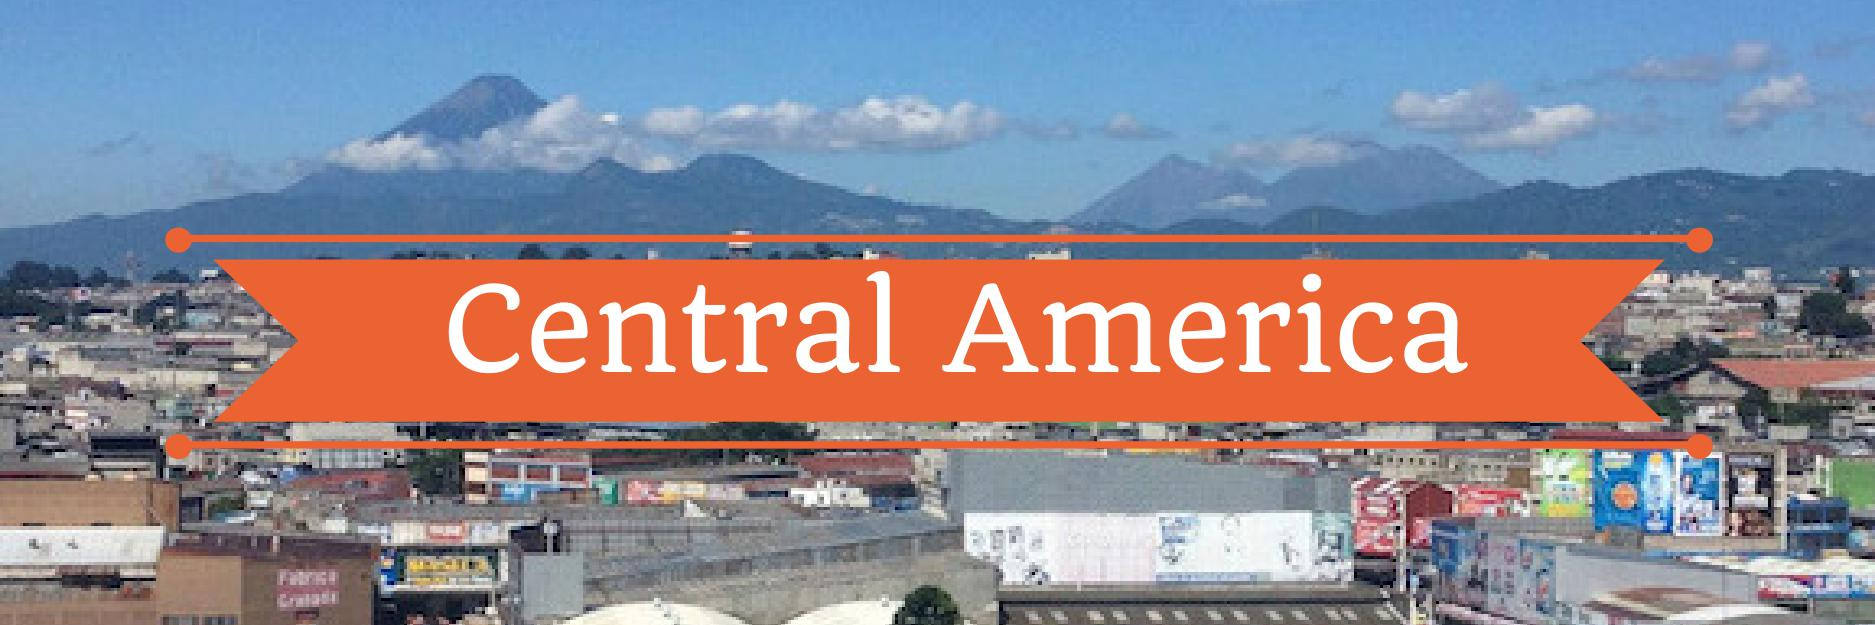 Central America Banner